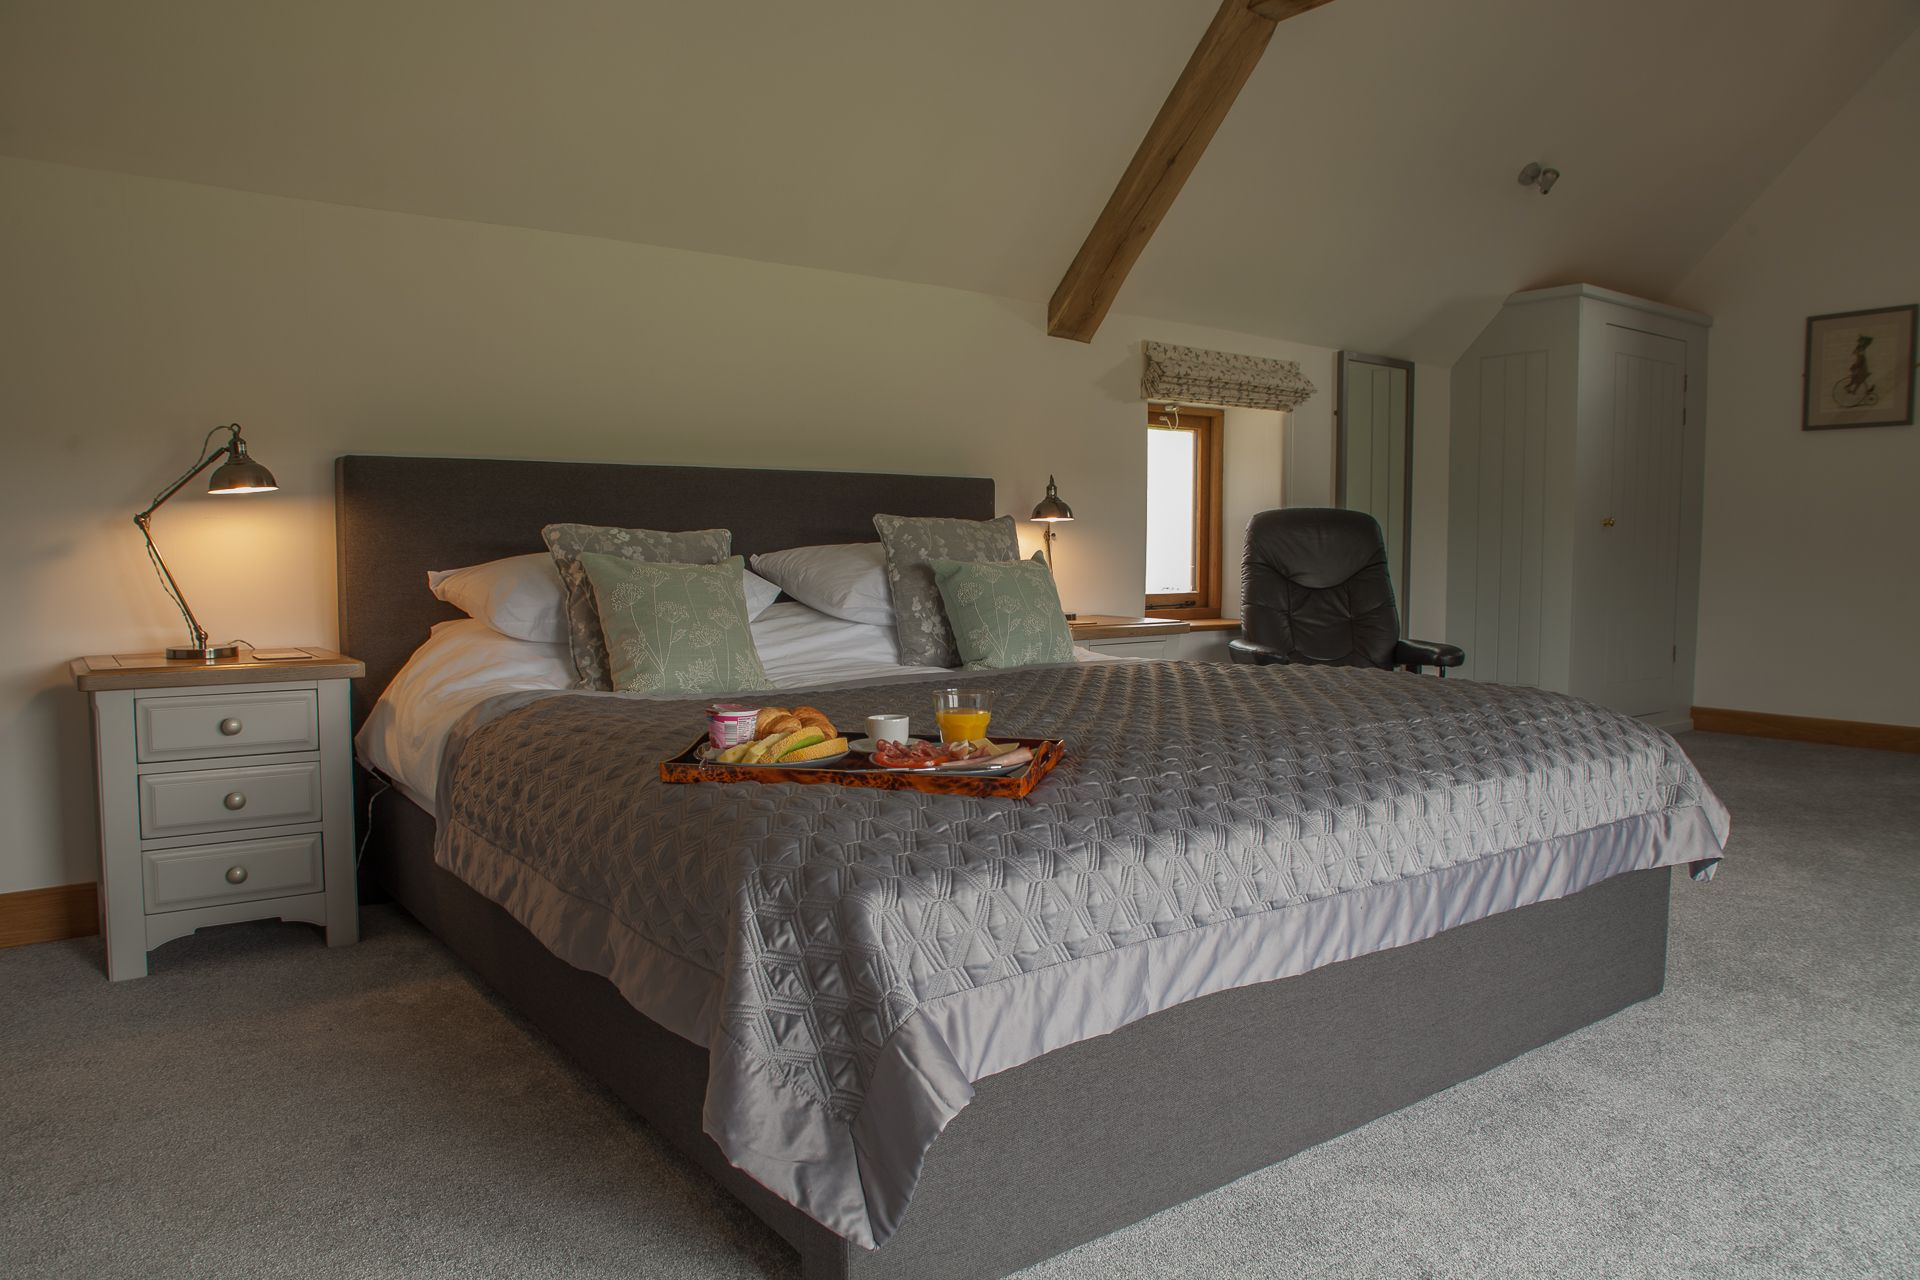 First floor: Master bedroom with super-king size bed and en-suite